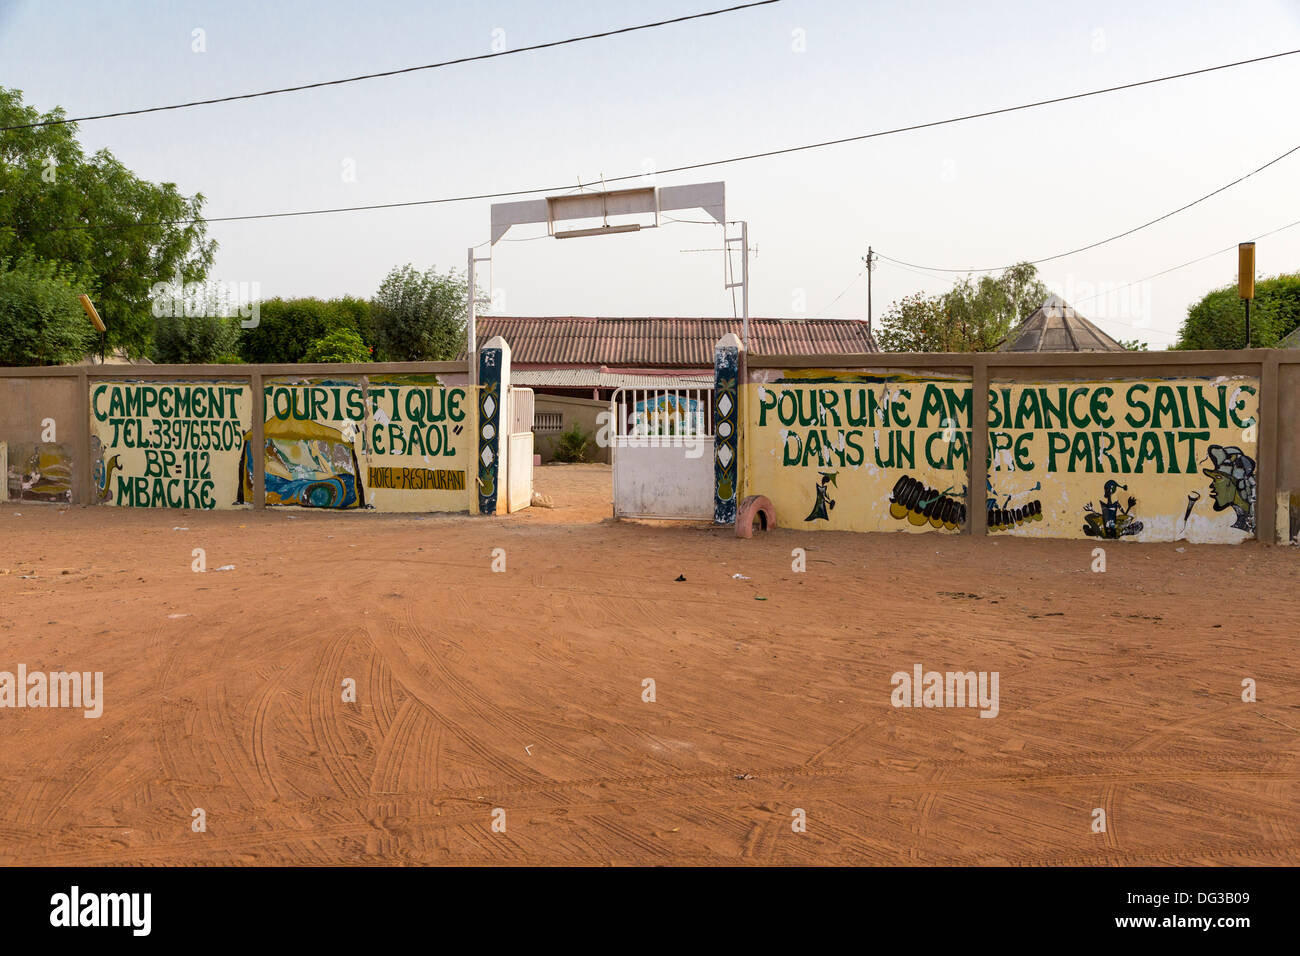 Senegal, Mbacke. Le Baol Campement, offering Simple Bungalows for Lodging near Touba, which has no hotels. - Stock Image